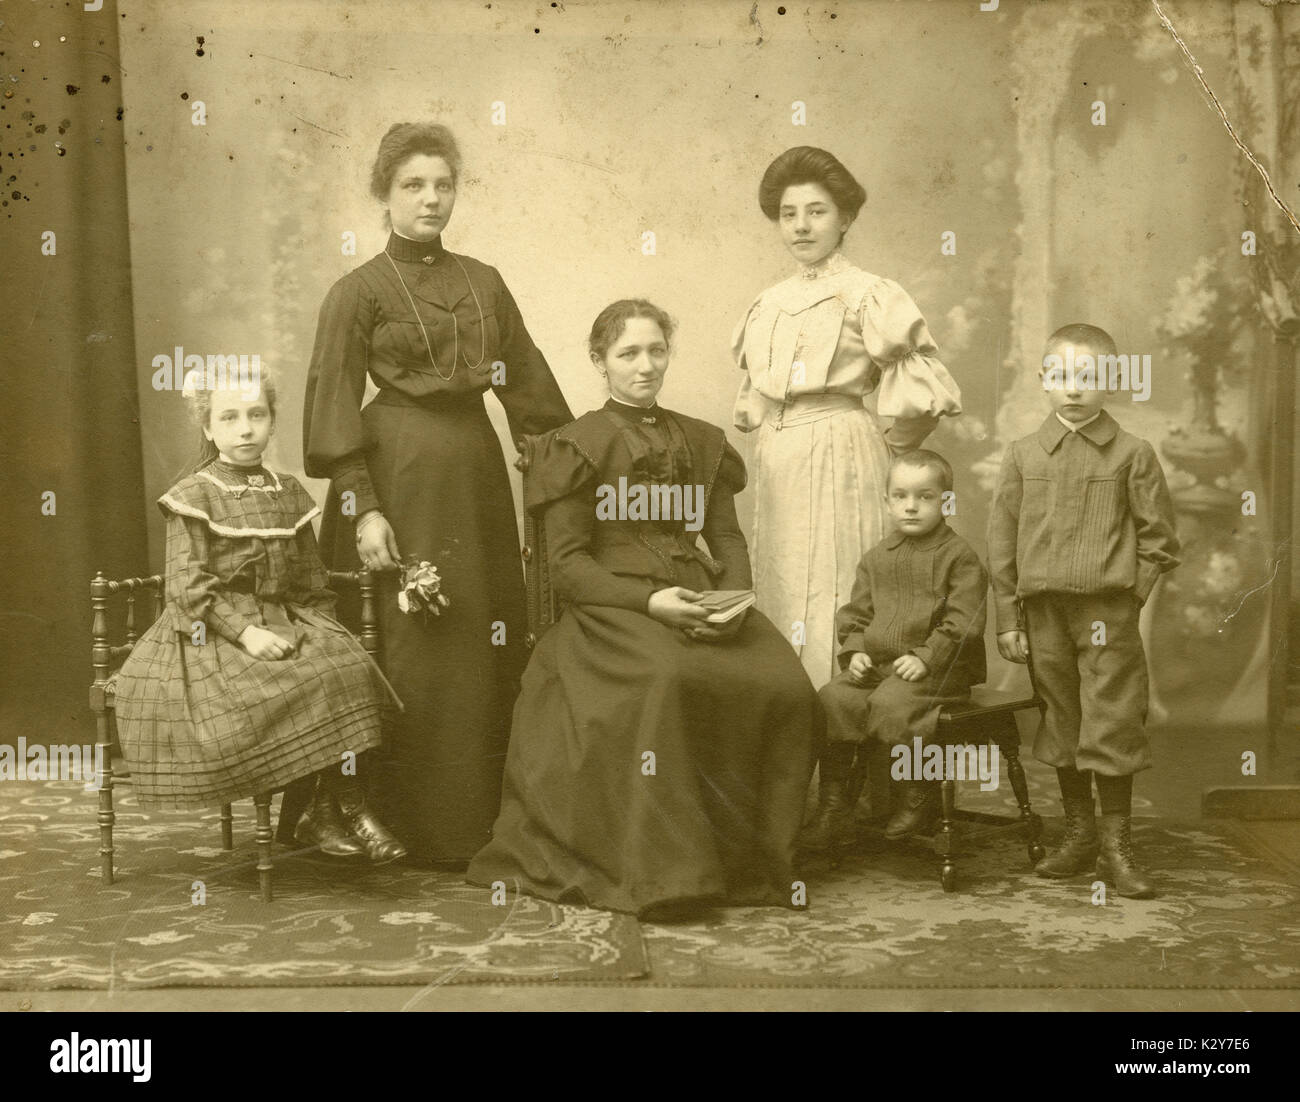 Antique c1900 photograph, mother and children, or mother and children with aunts. SOURCE: ORIGINAL PHOTOGRAPH. Stock Photo